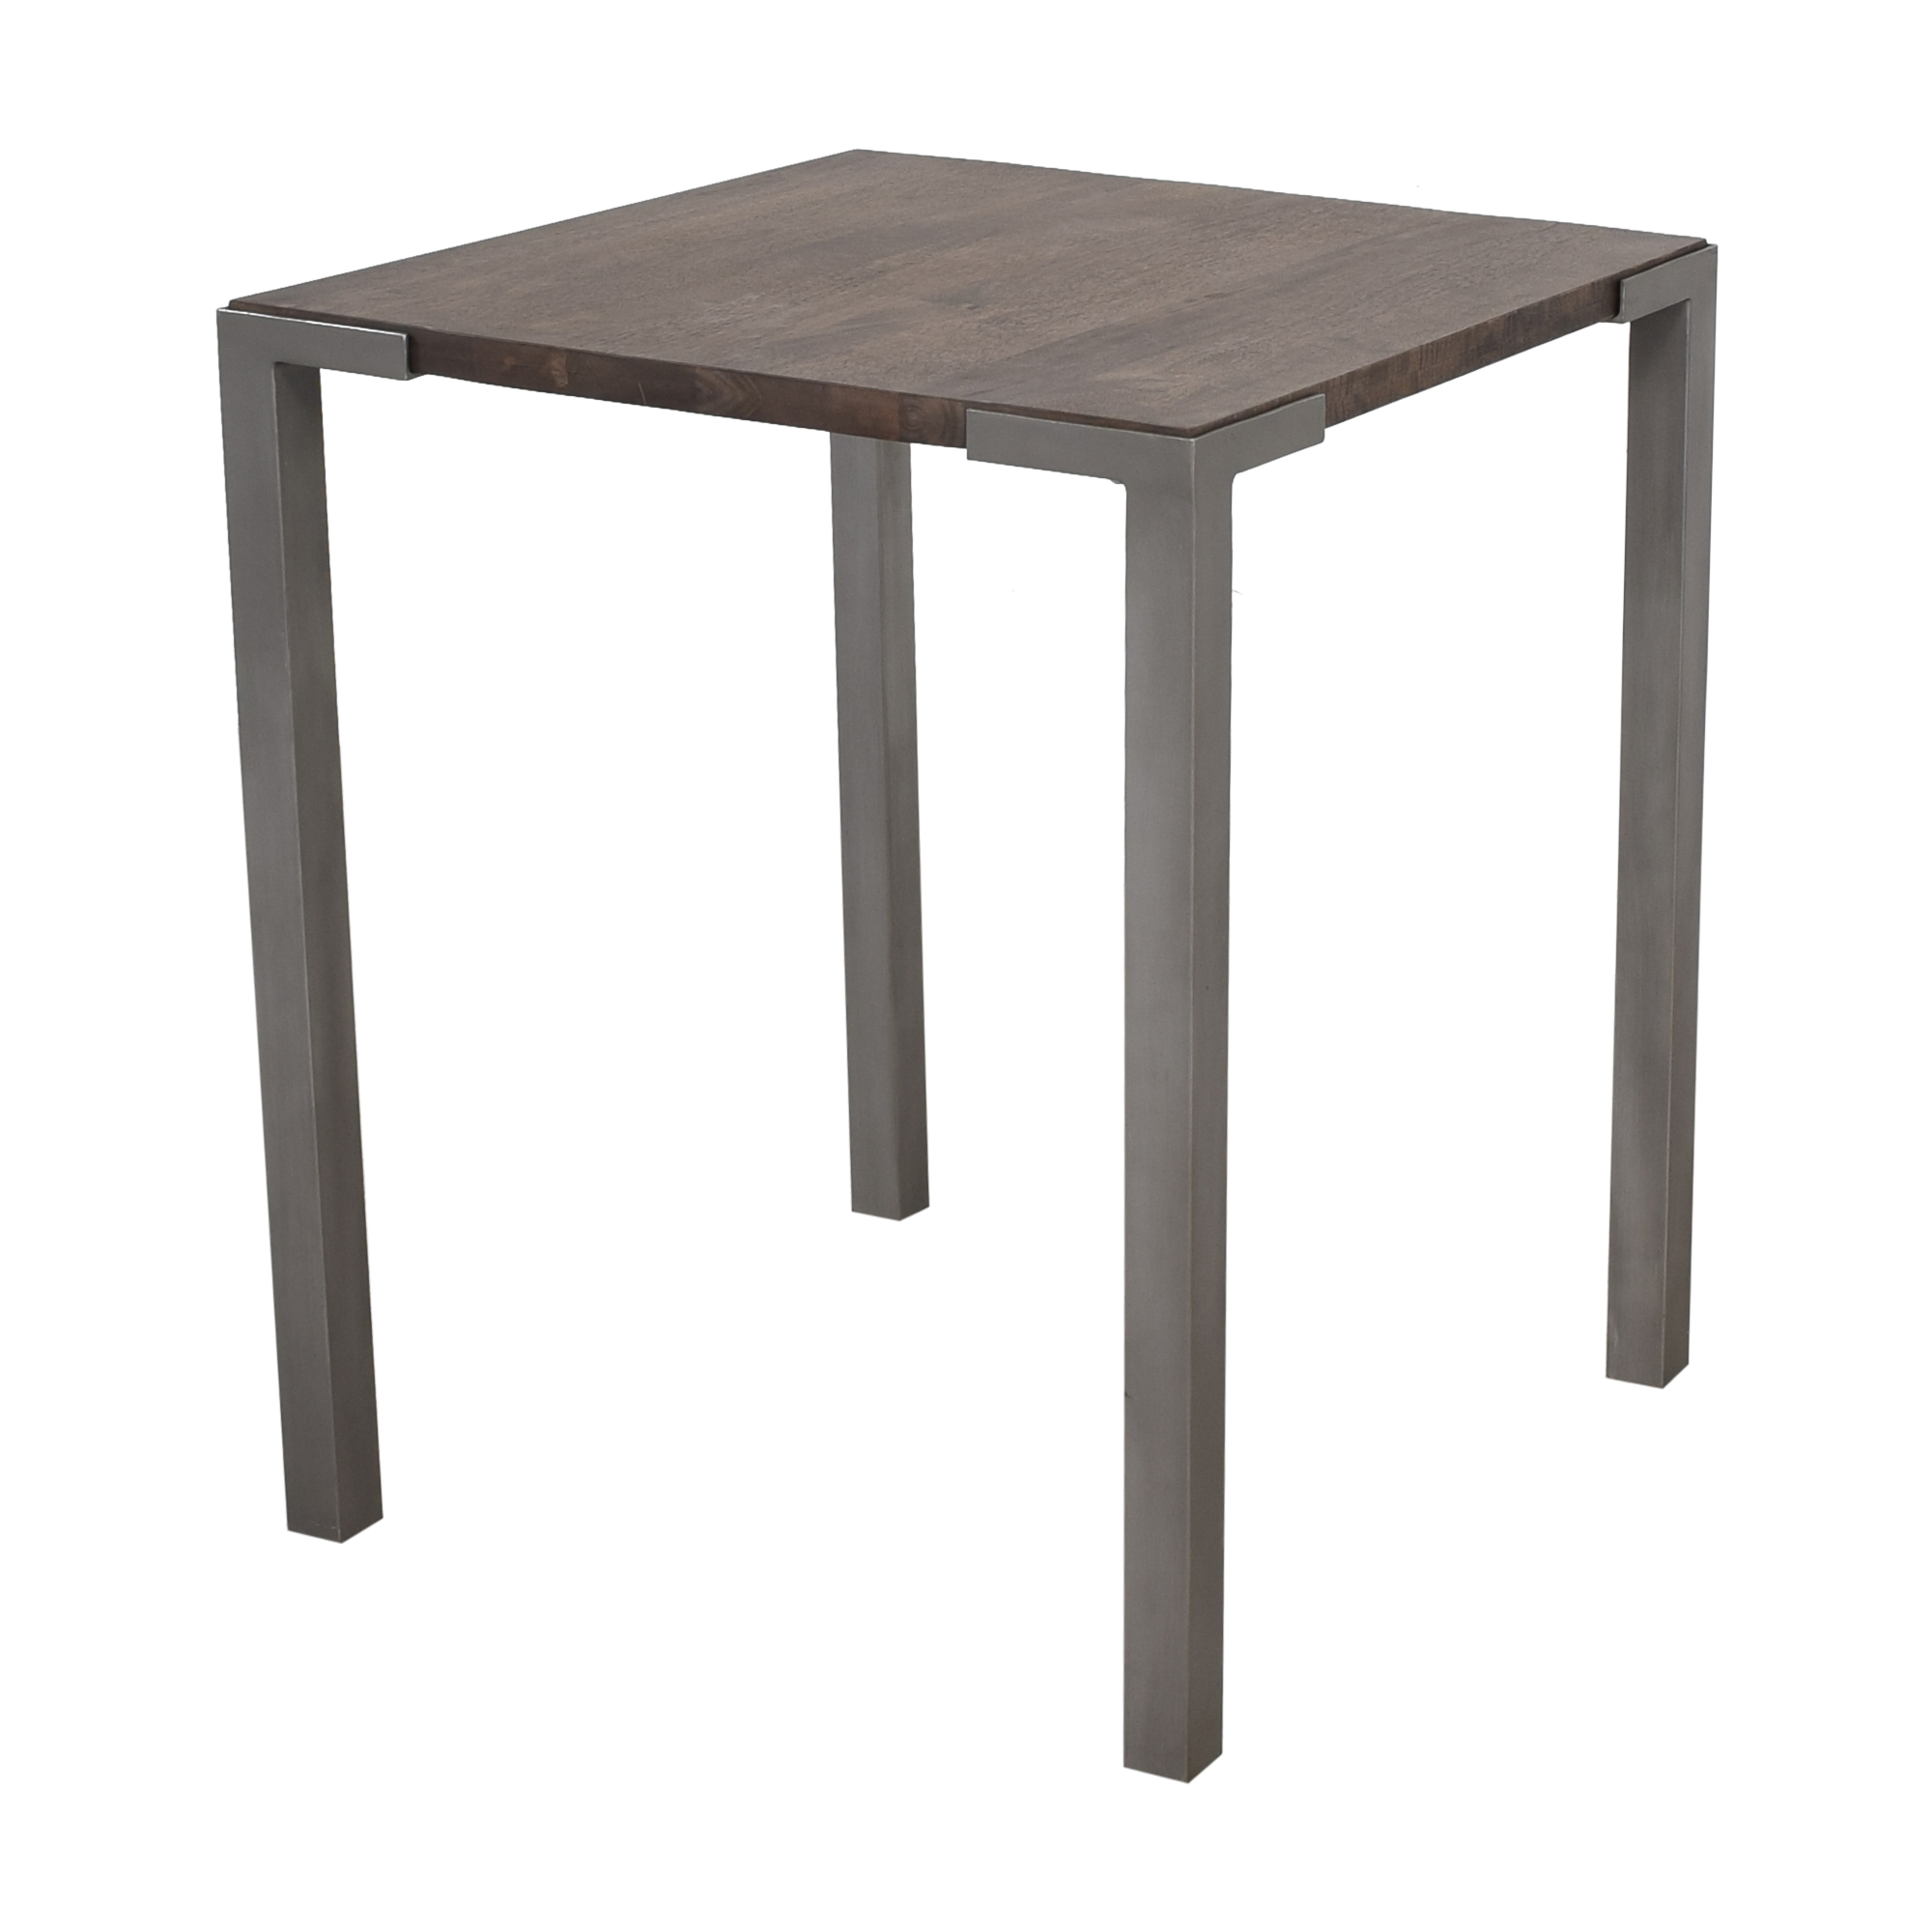 CB2 CB2 Stilt Two Top Counter Table dark brown